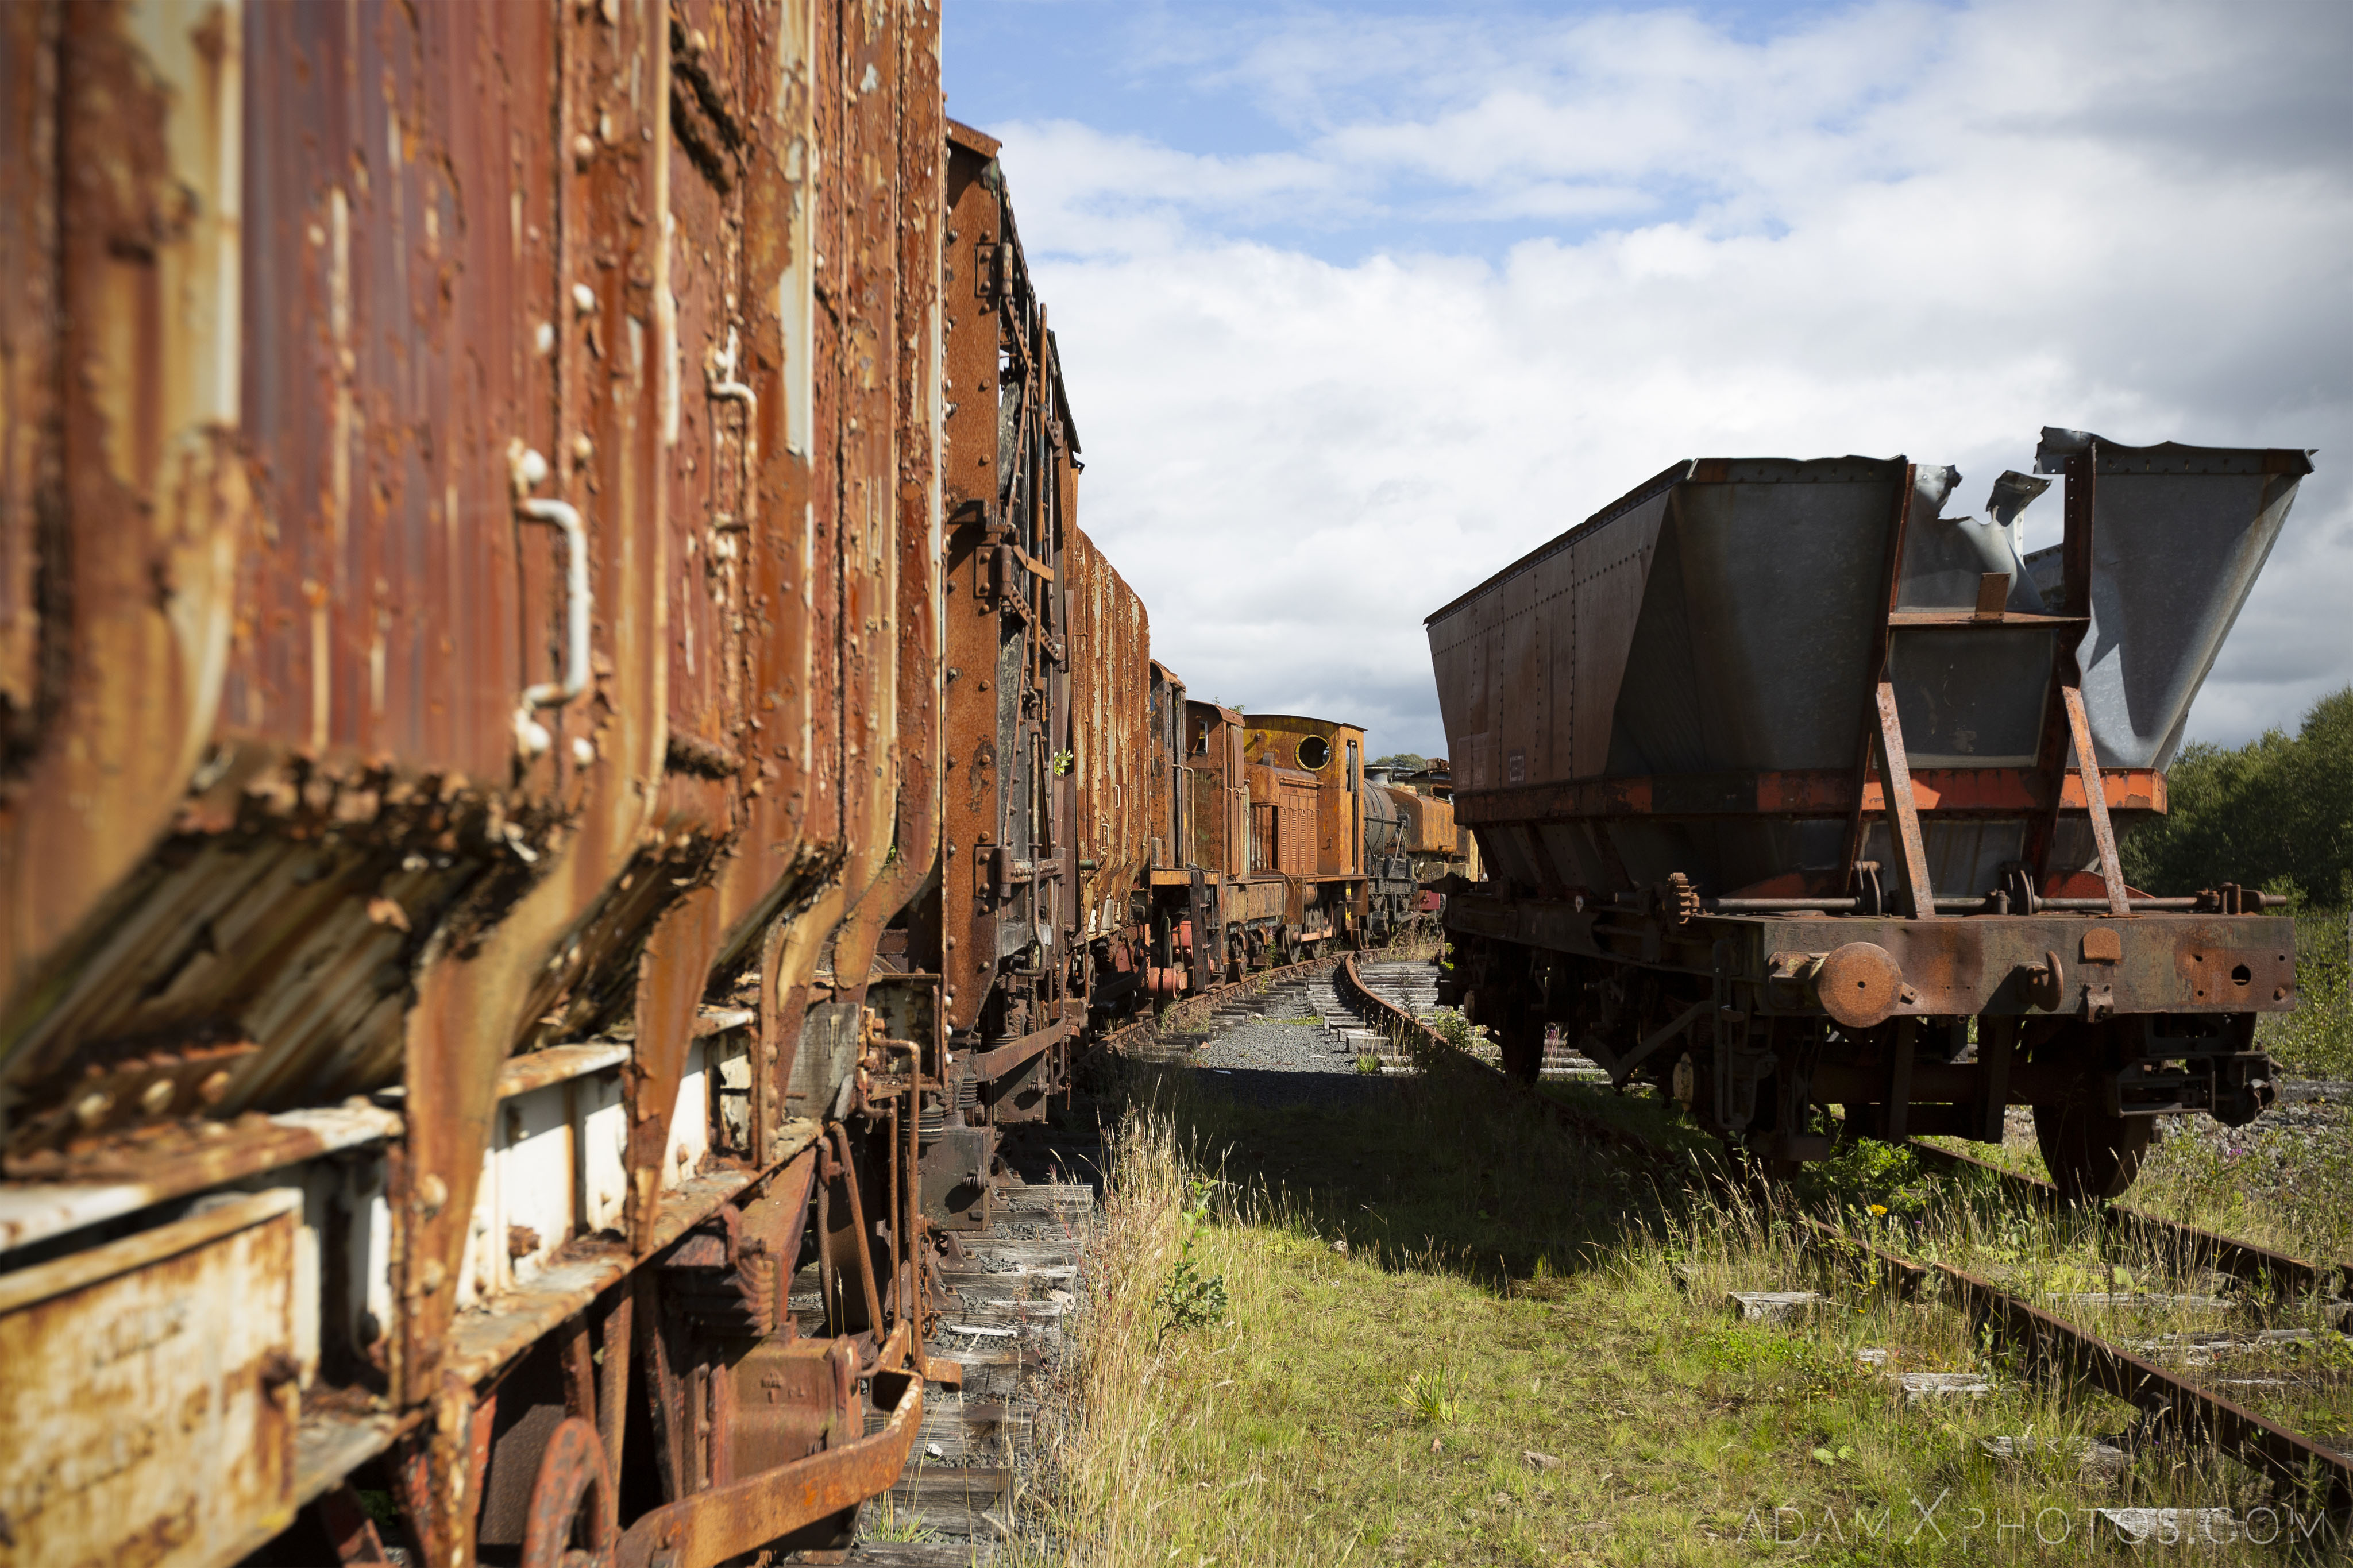 carriages tracks freight Abandoned Trains Waterside Dunaskin Adam X Urbex Urban Exploration Access 2018 Abandoned decay lost forgotten derelict location creepy haunting eerie